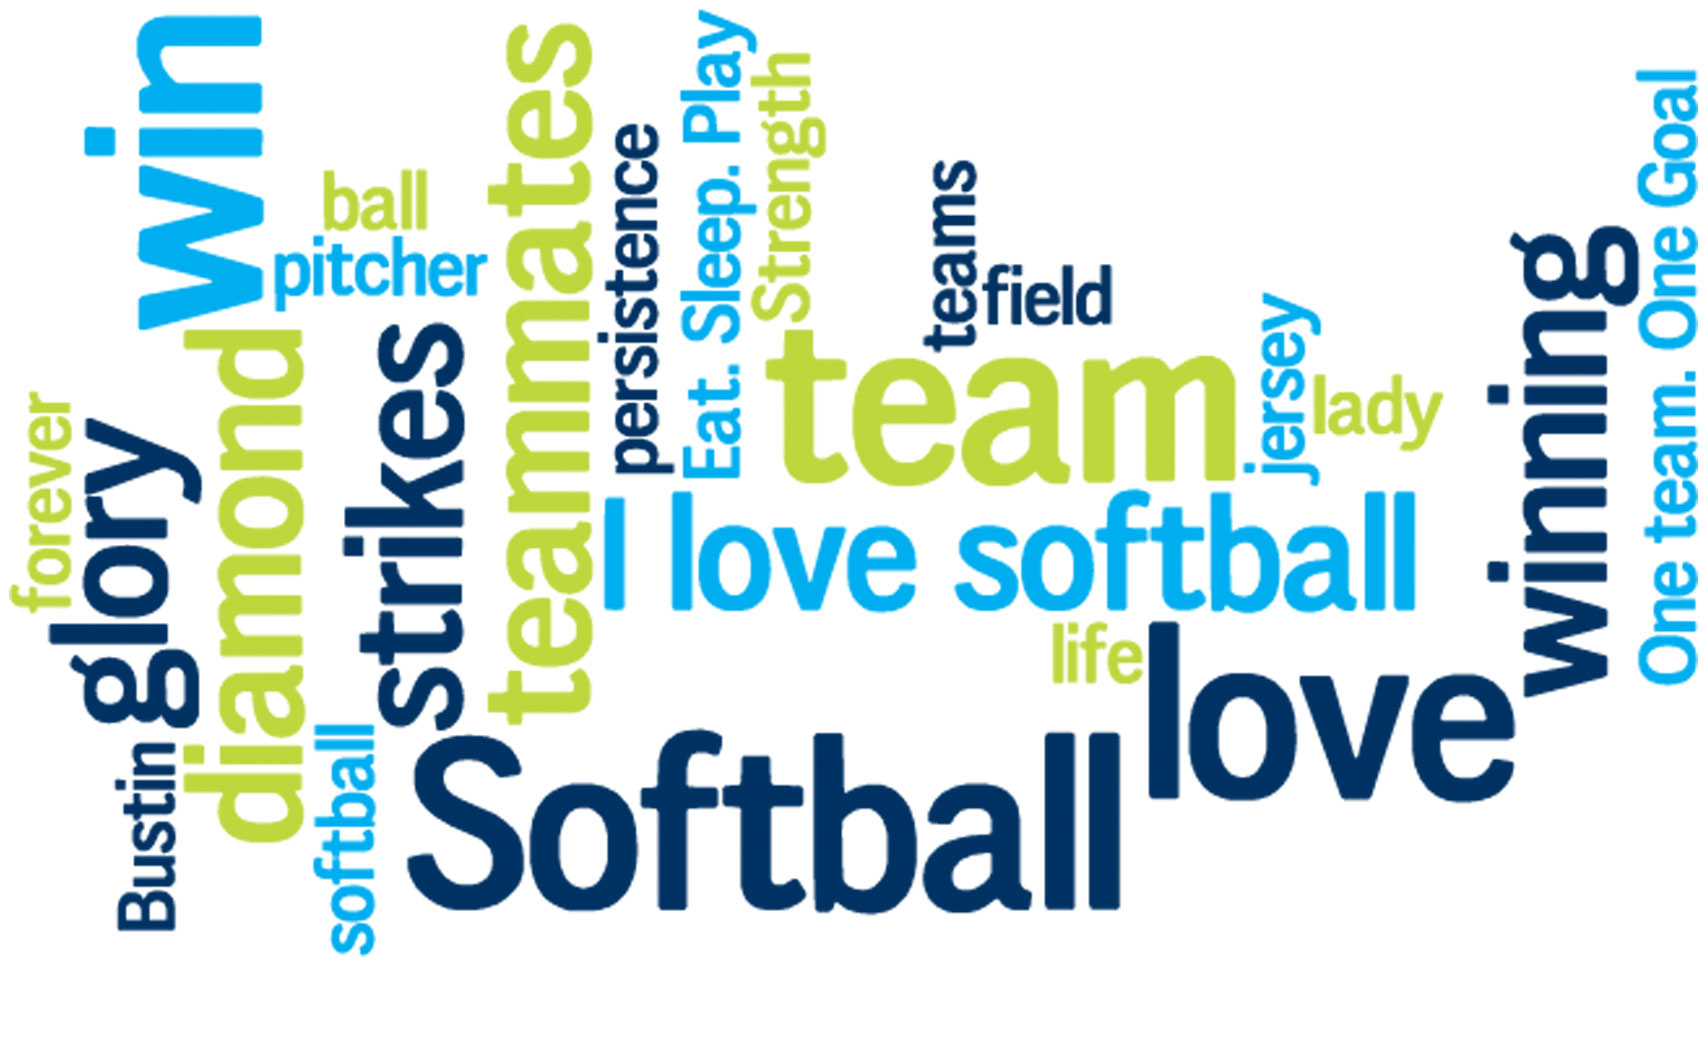 Softball friendship quotes quotesgram - Softball Friendship Quotes Quotesgram 32